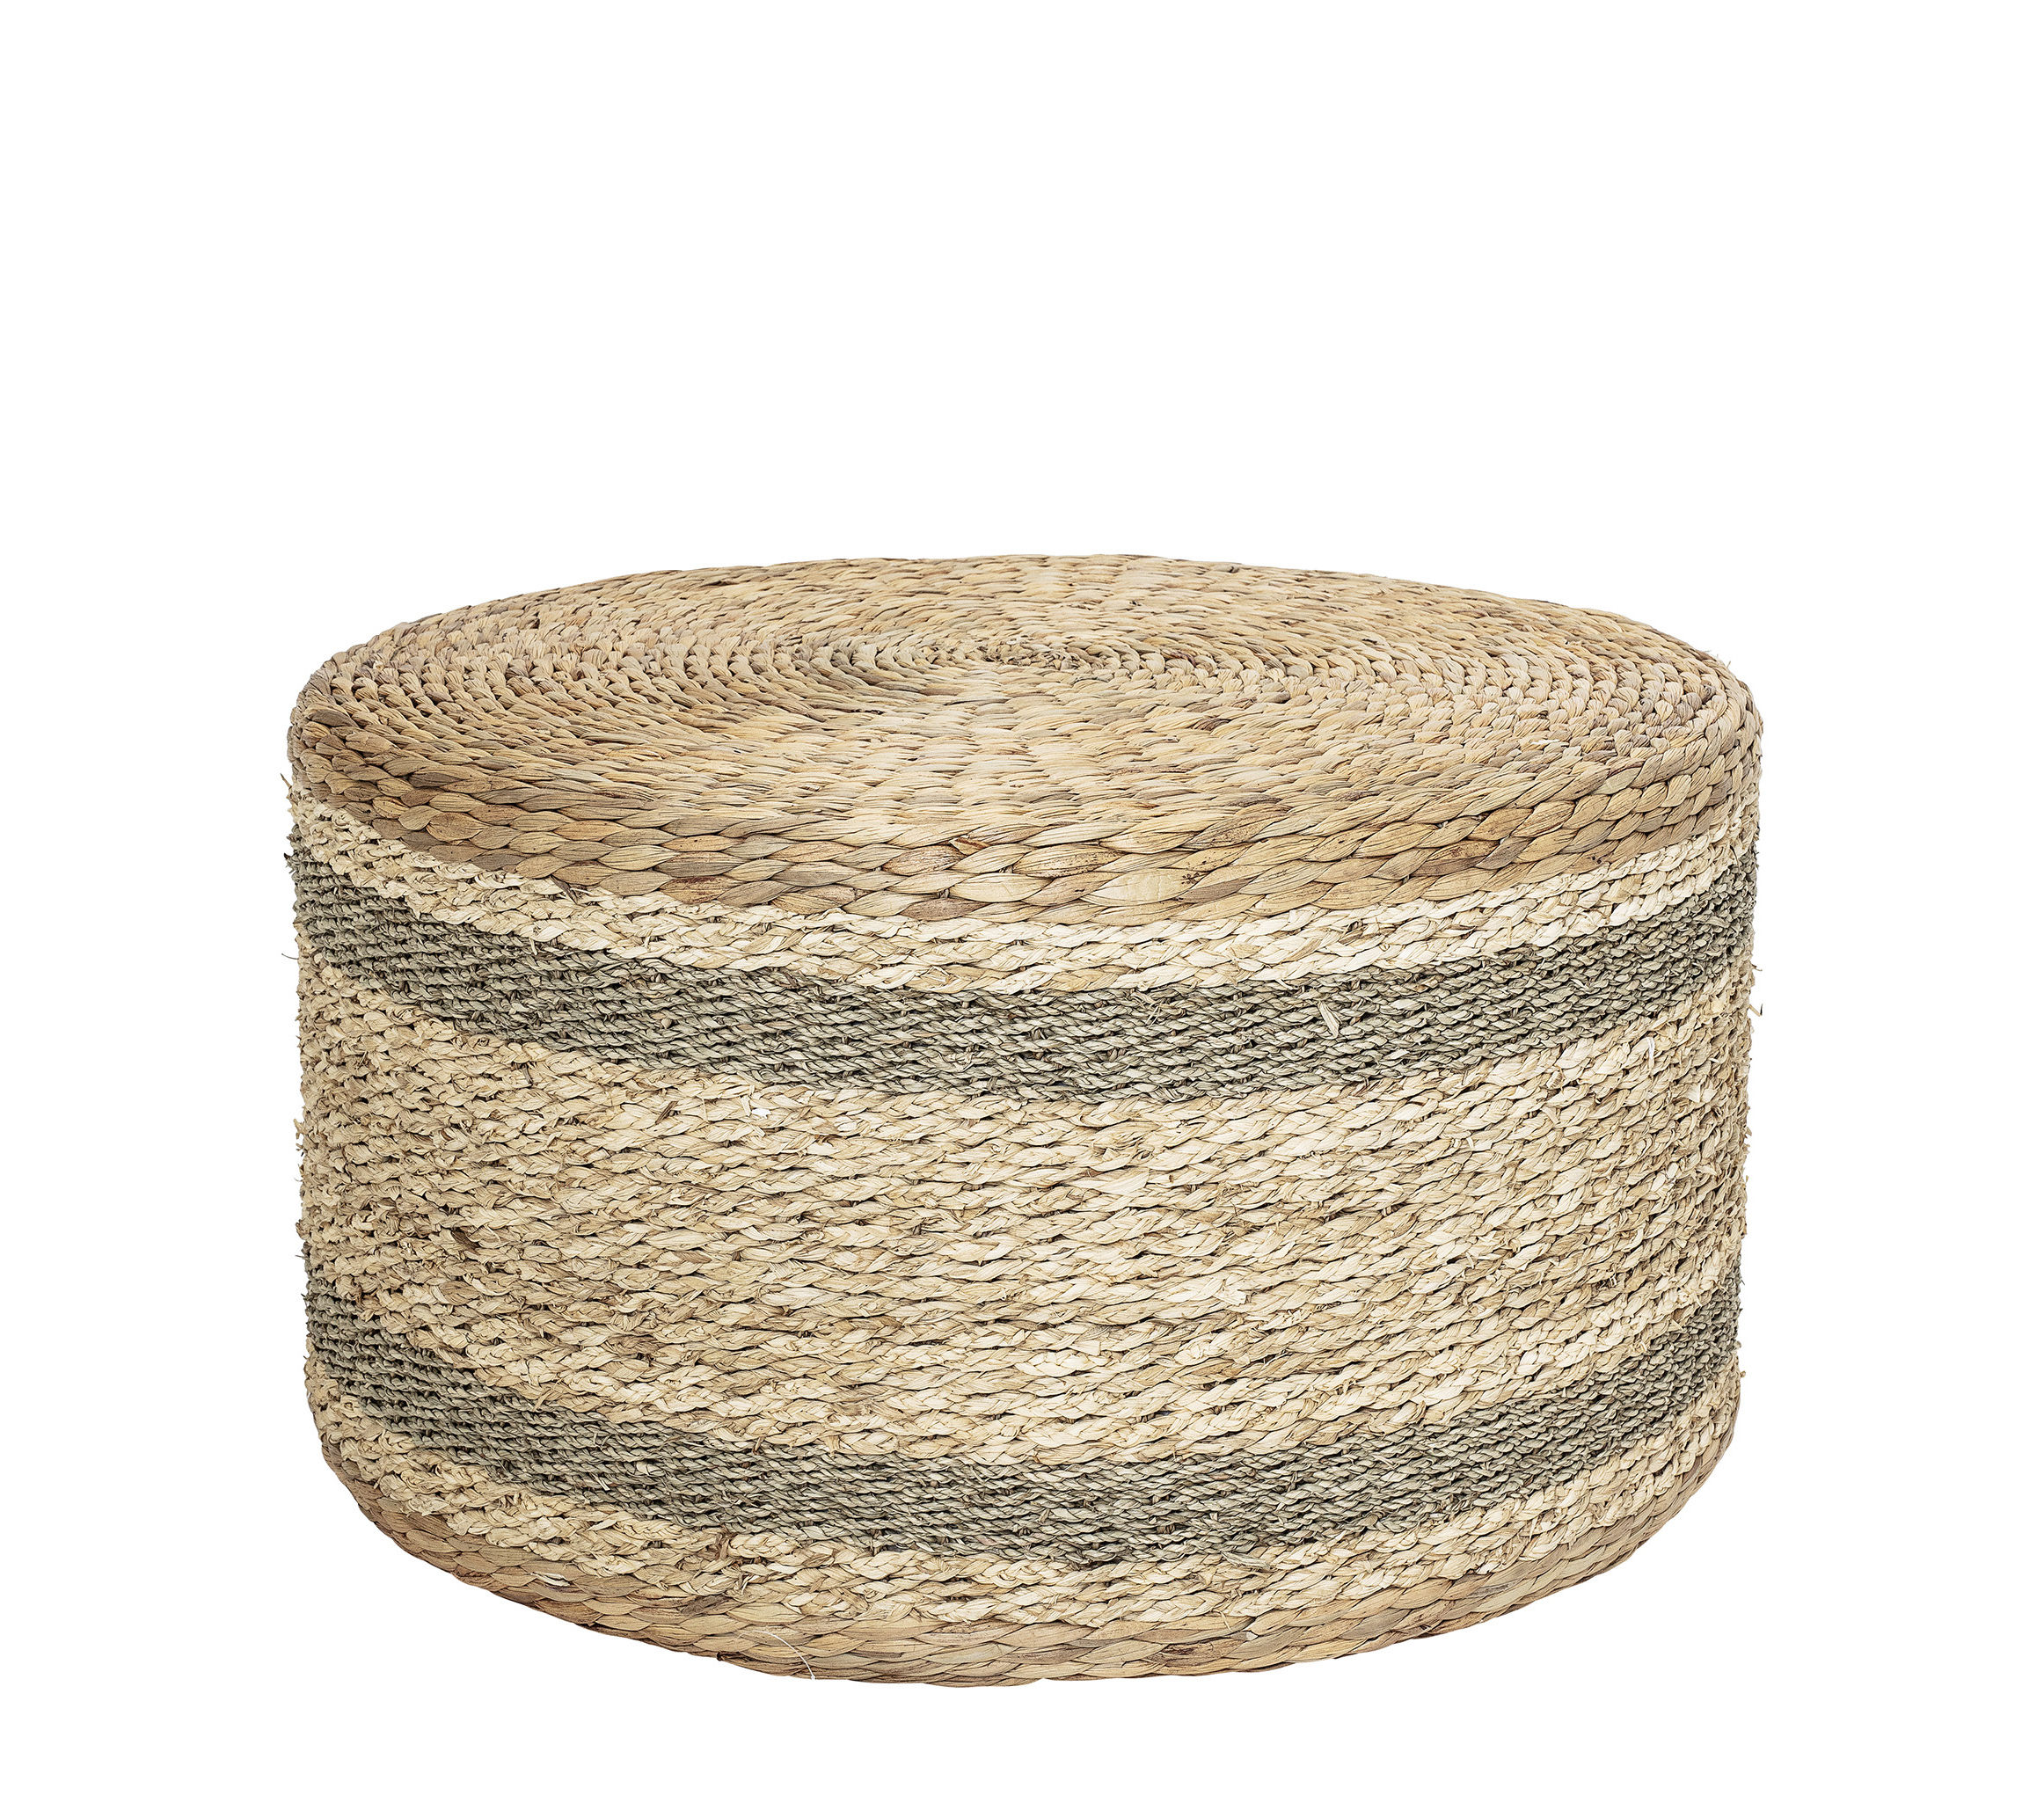 Furniture - Poufs & Floor Cushions - Rota Pouf - / Water hyacinth - Ø 75 x H 40 cm by Bloomingville - Natural fibre - Water hyacinth